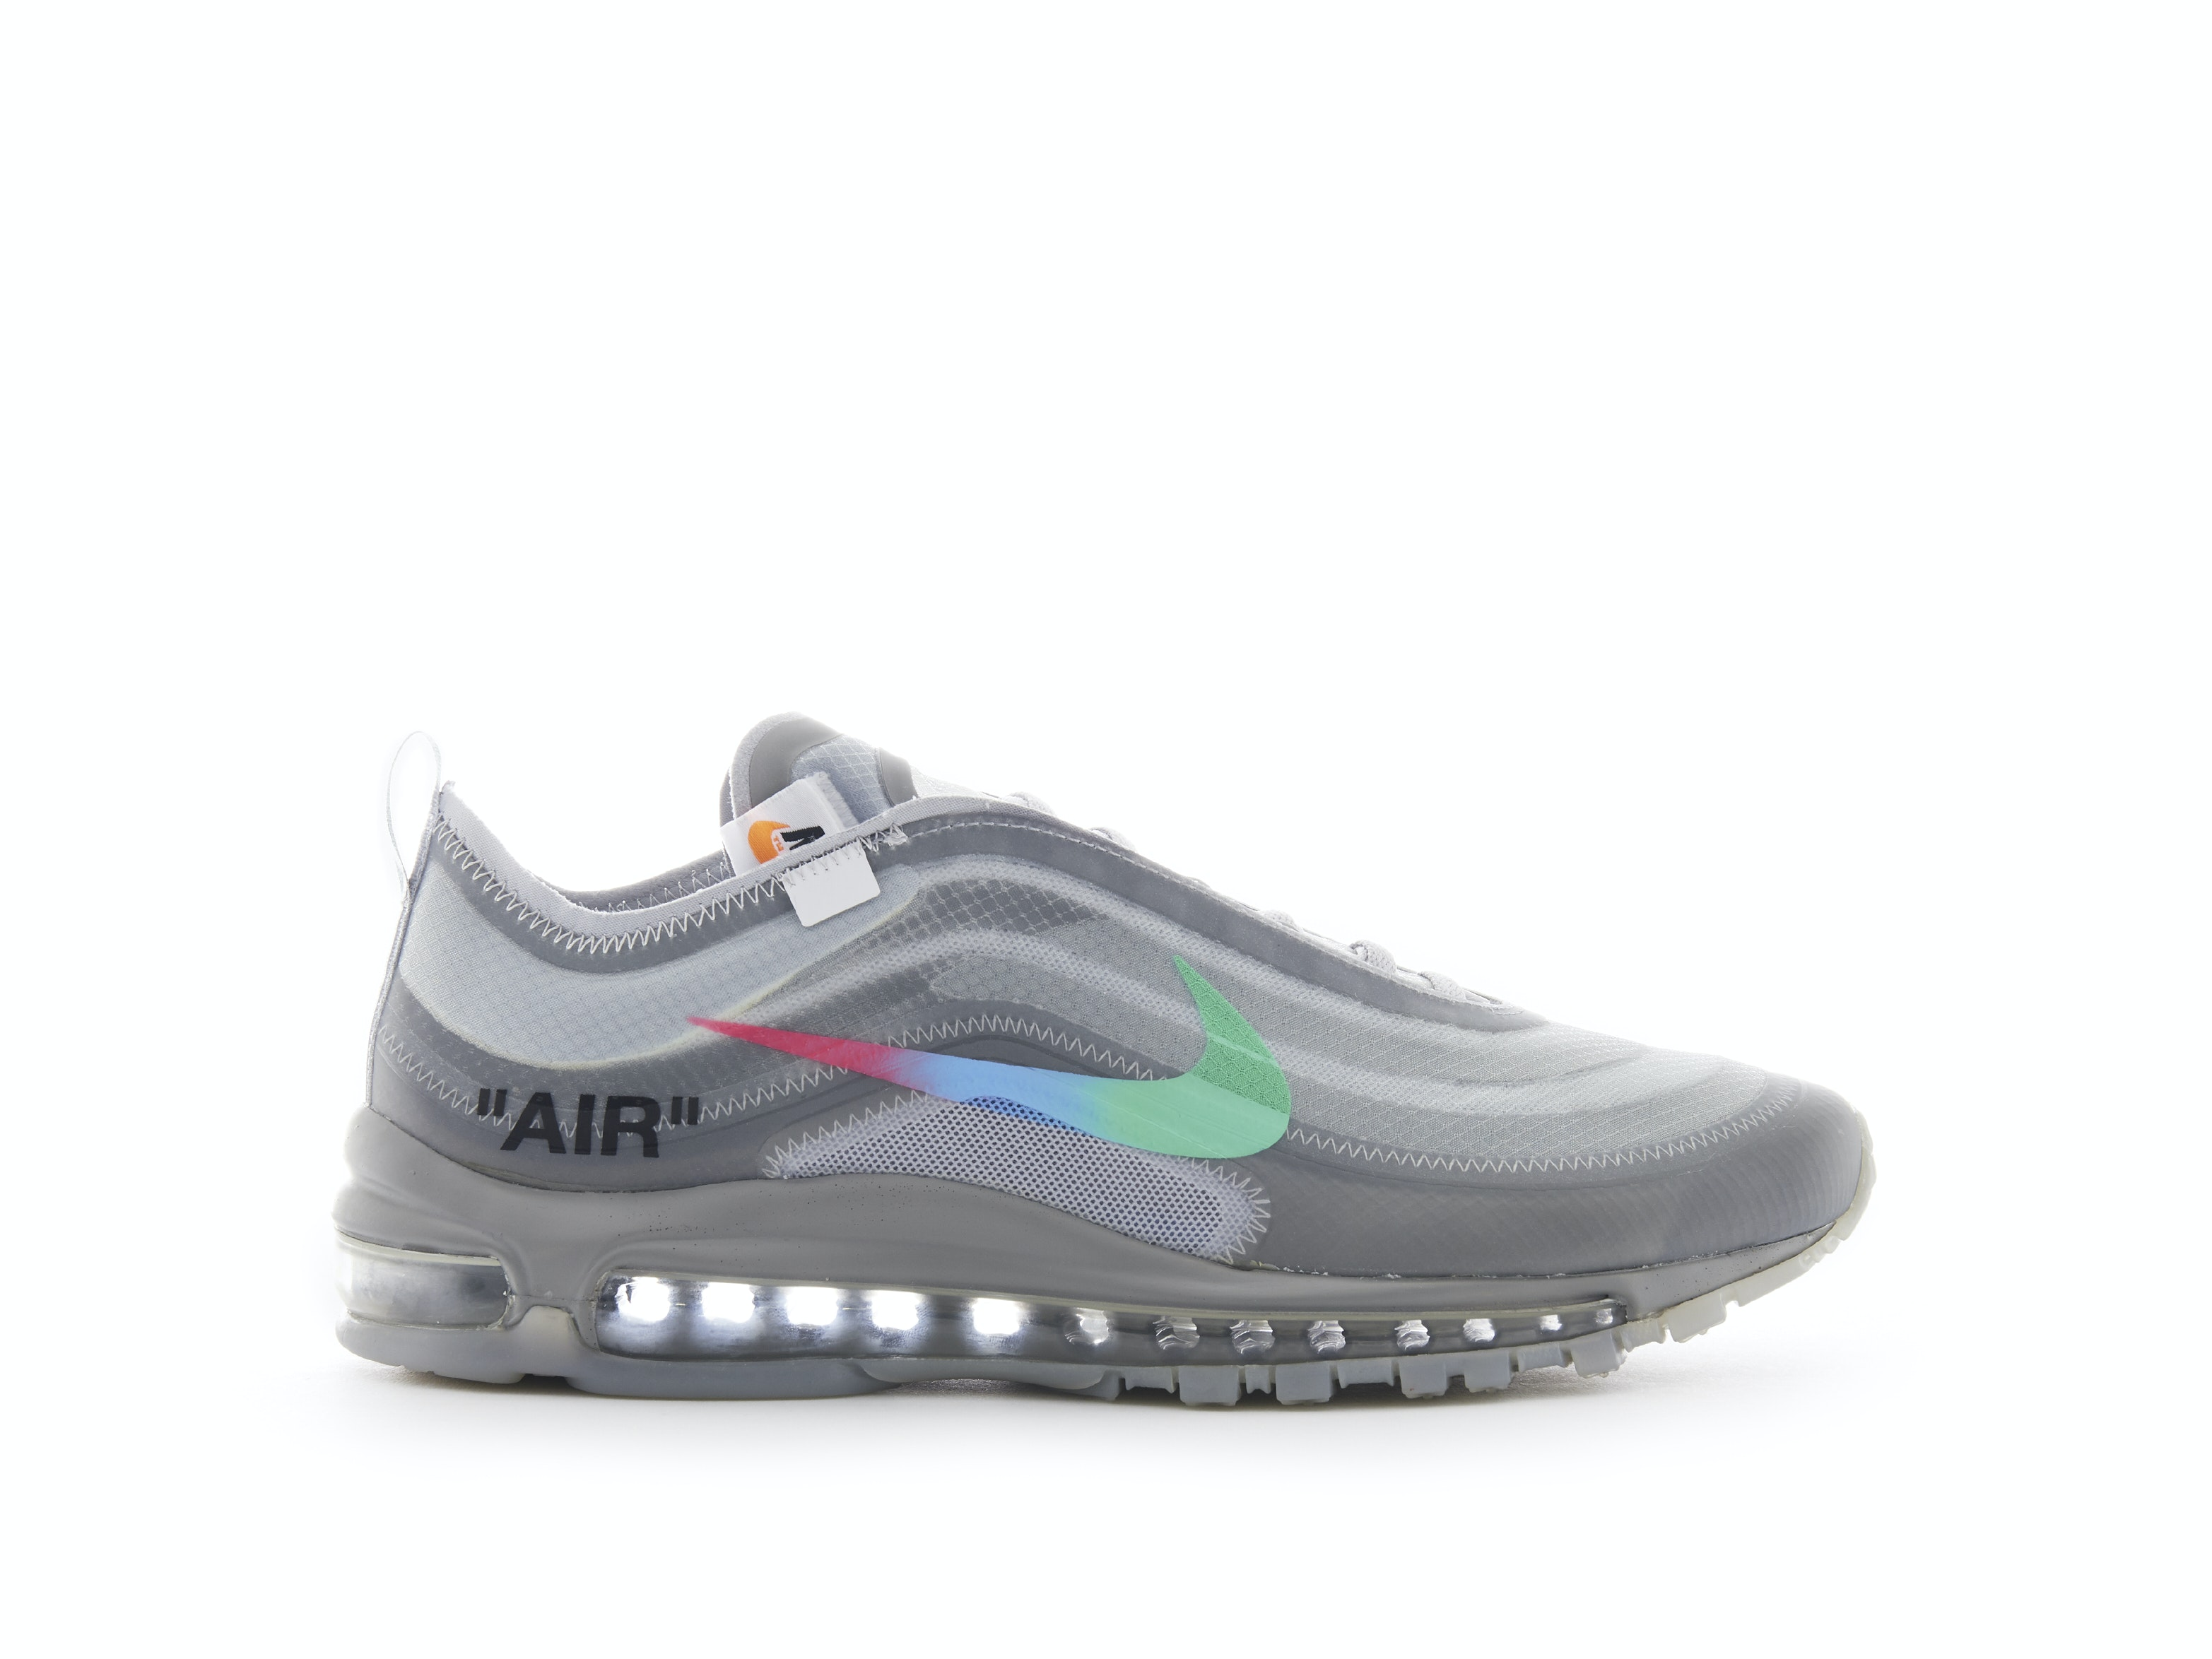 the best attitude 813b9 e3502 Air Max 97 Menta Trainers | Nike Air Max Off White Sneakers ...